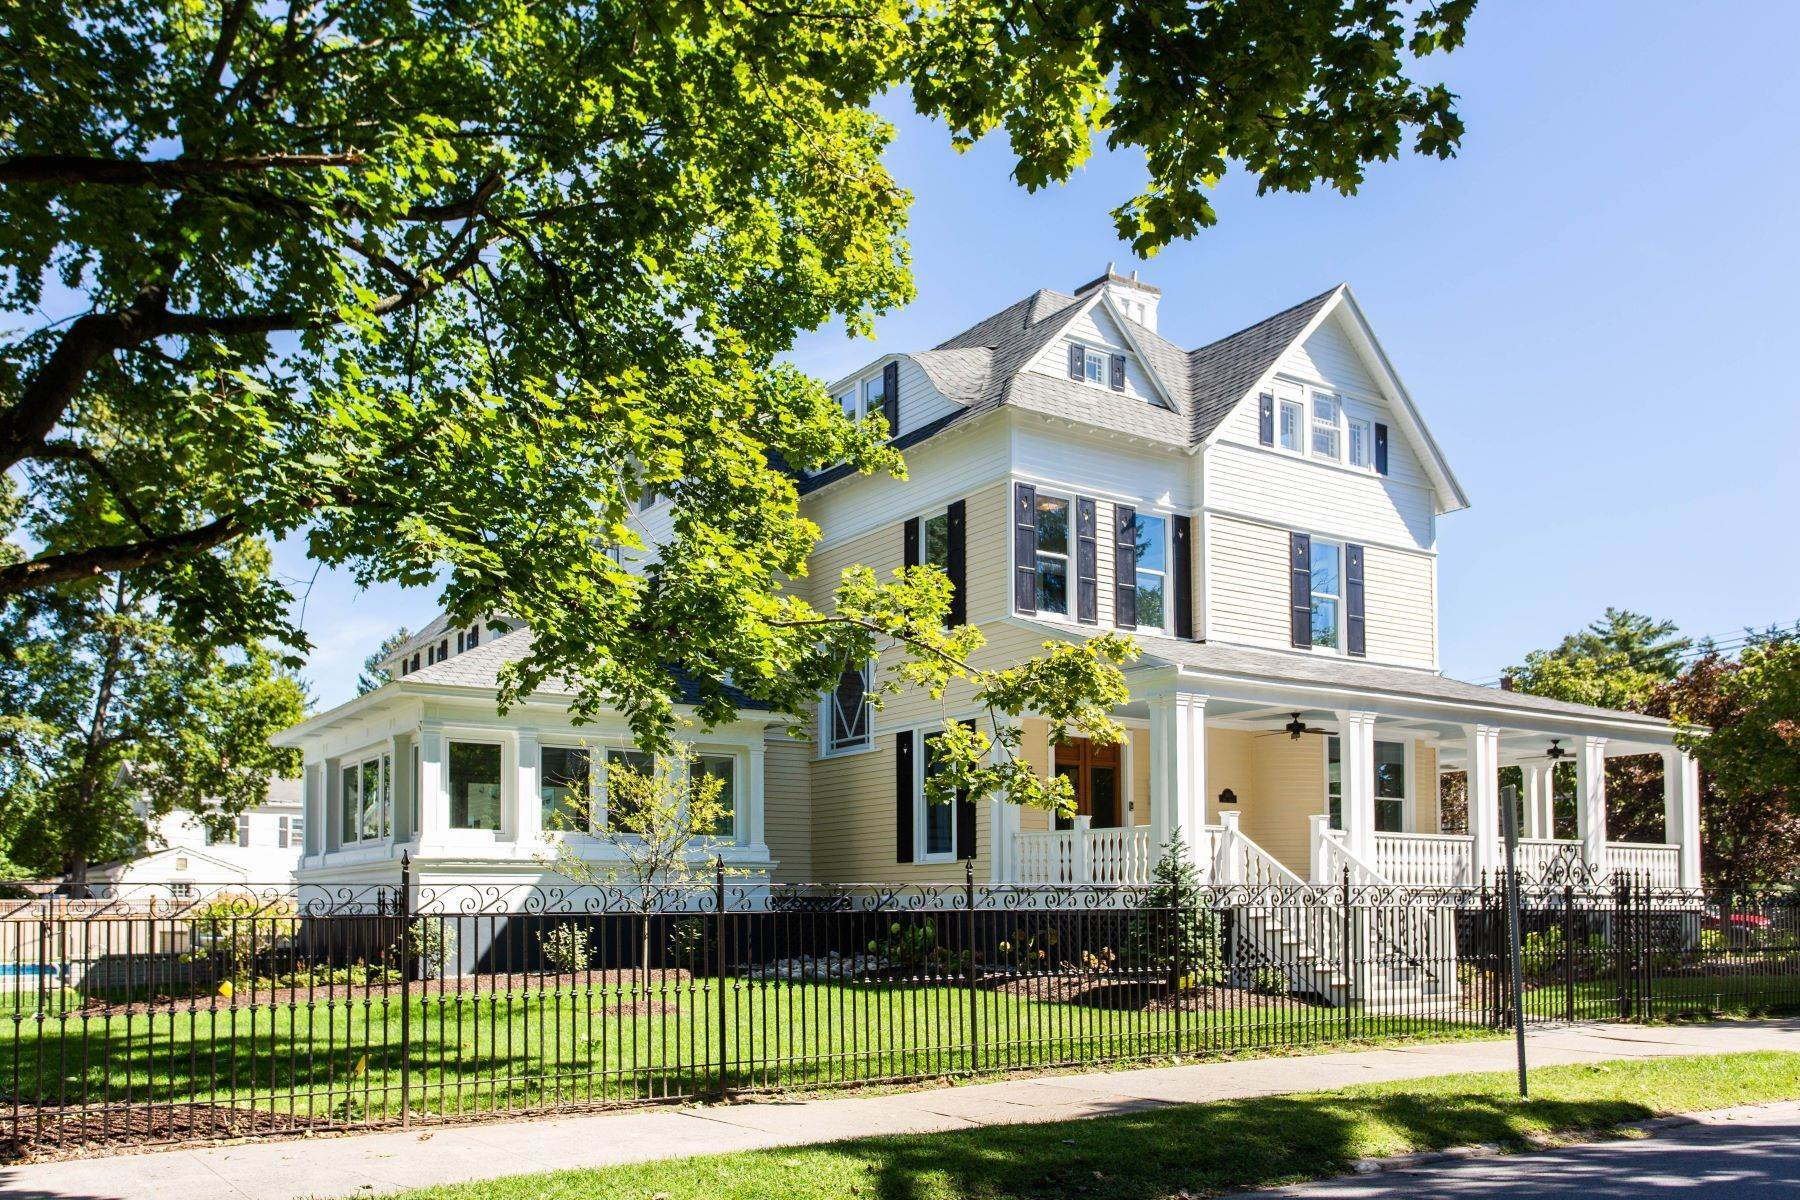 Single Family Homes for Sale at Renovated East Side Victorian 181 Phila Street Saratoga Springs, New York 12866 United States